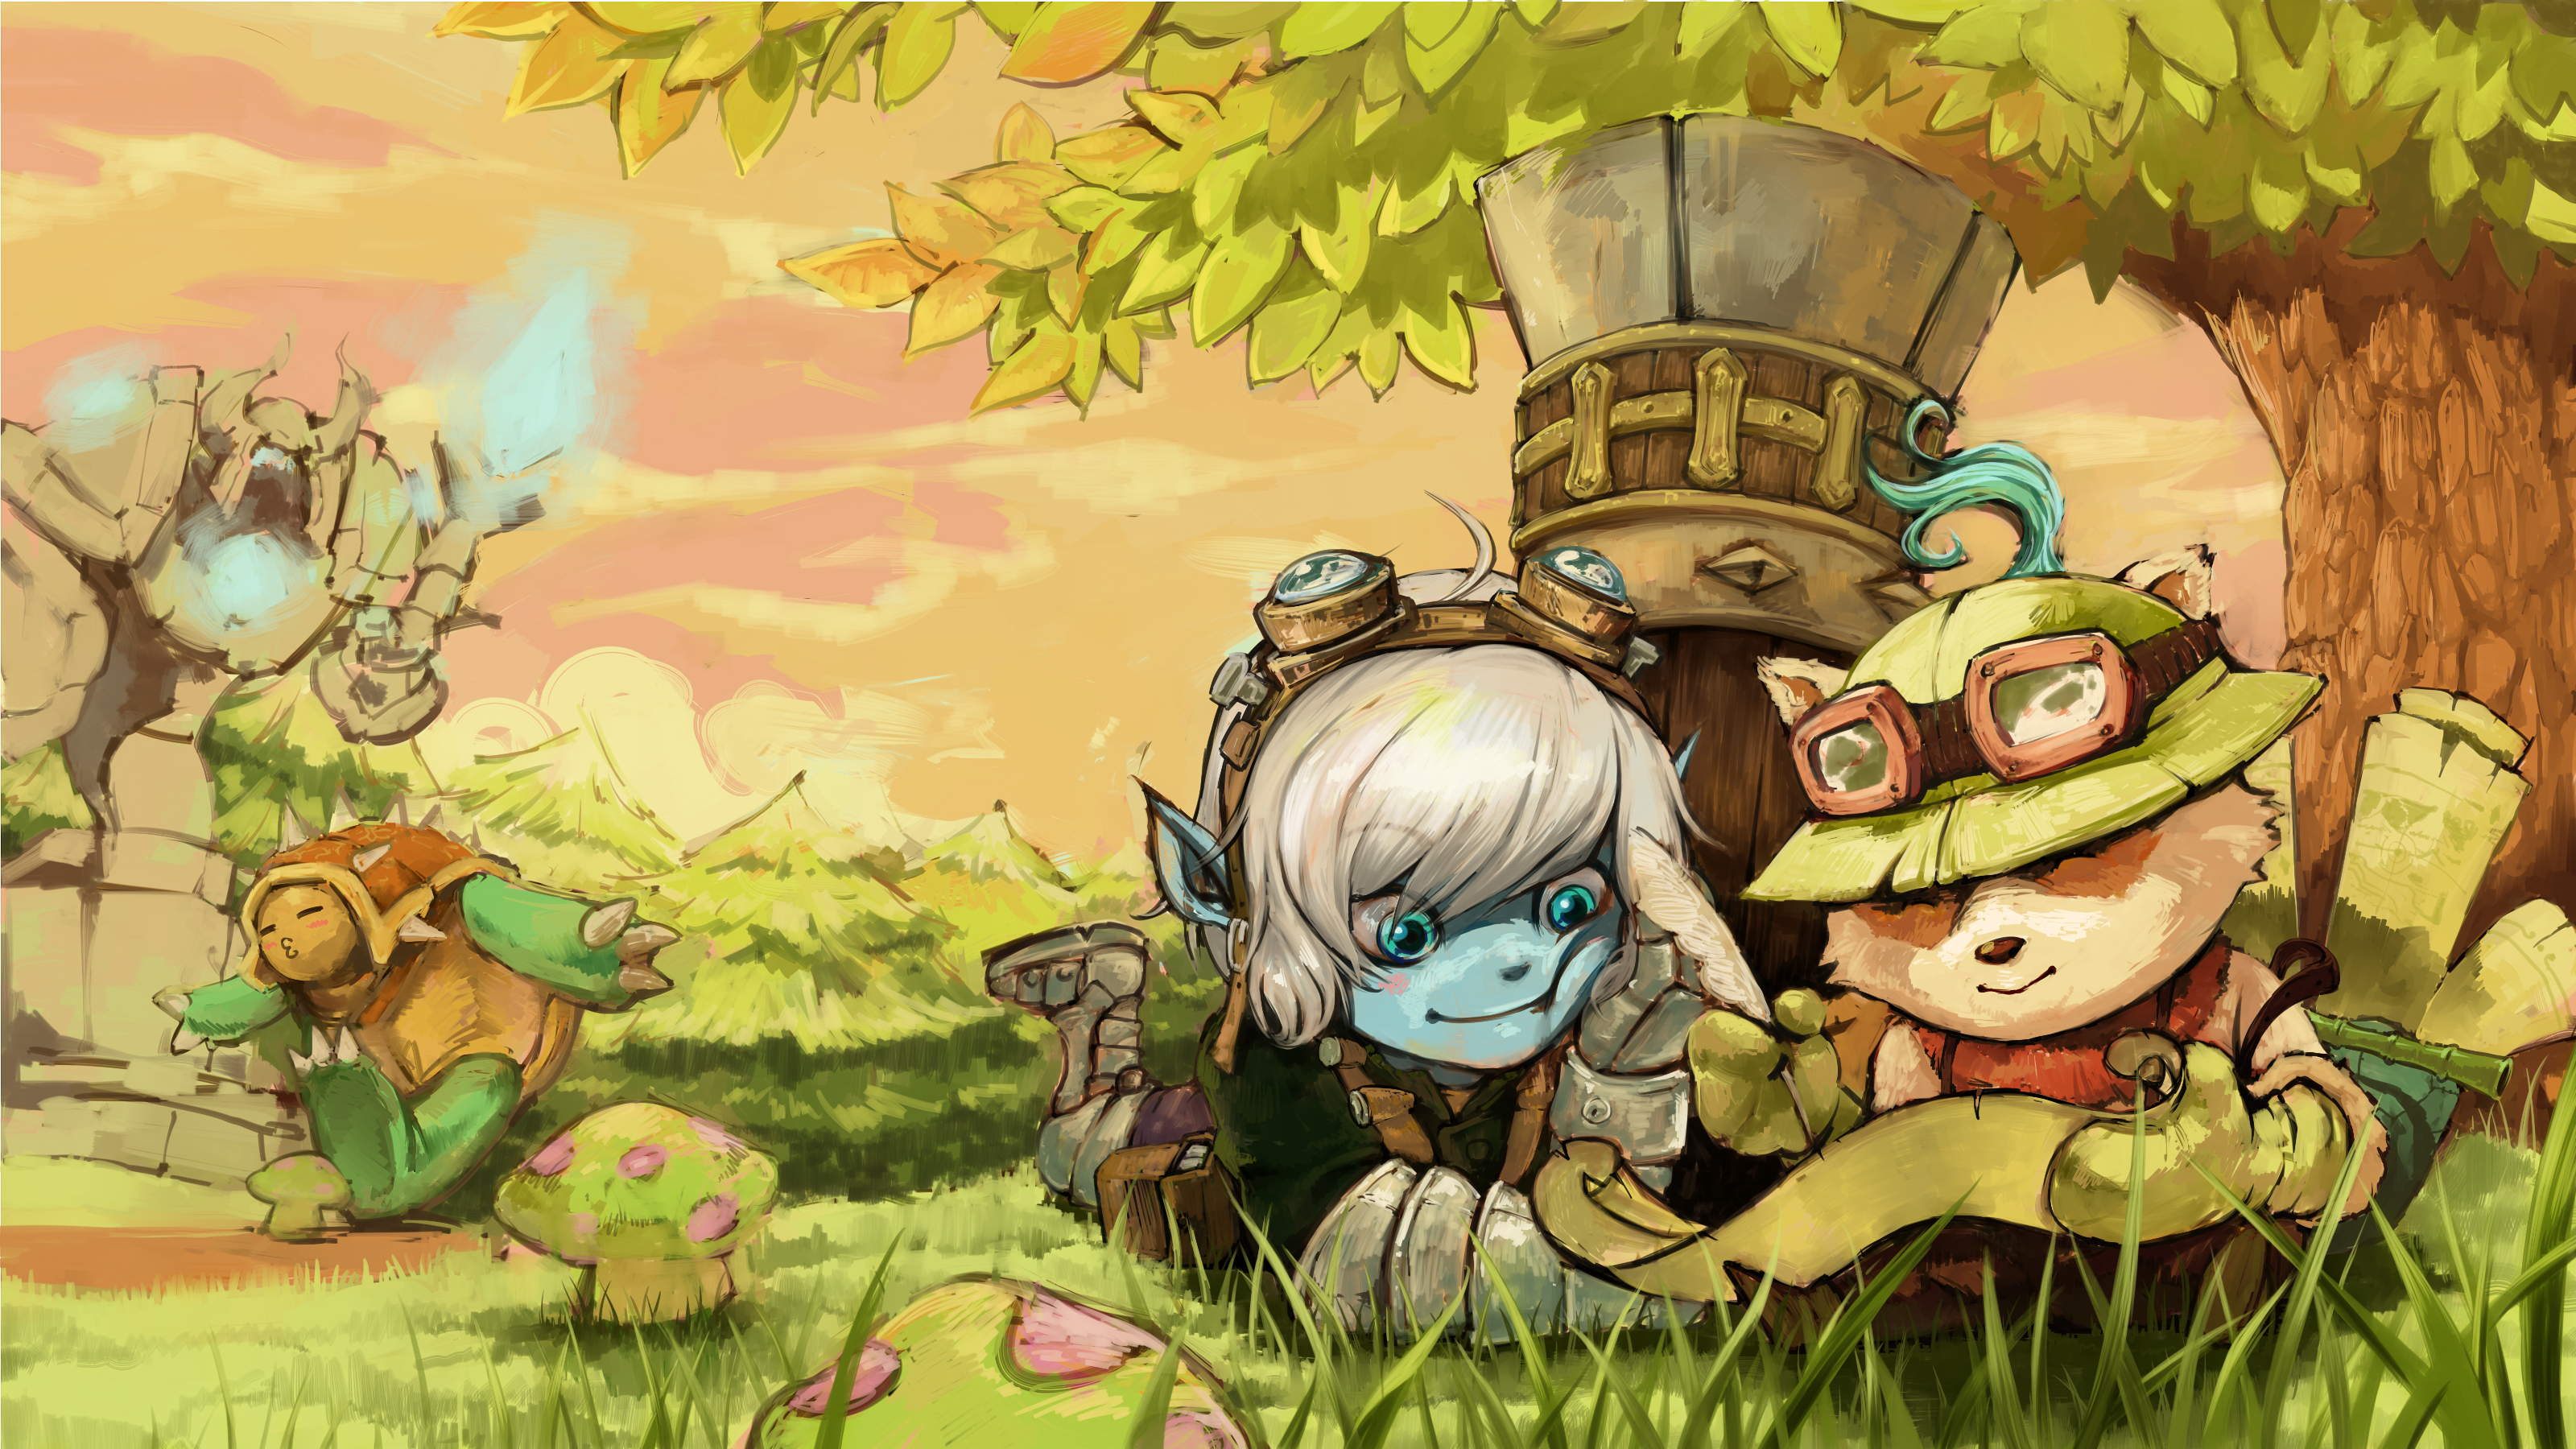 League Of Legends Teemo And Trist Wallpaper By Kirill2485 On